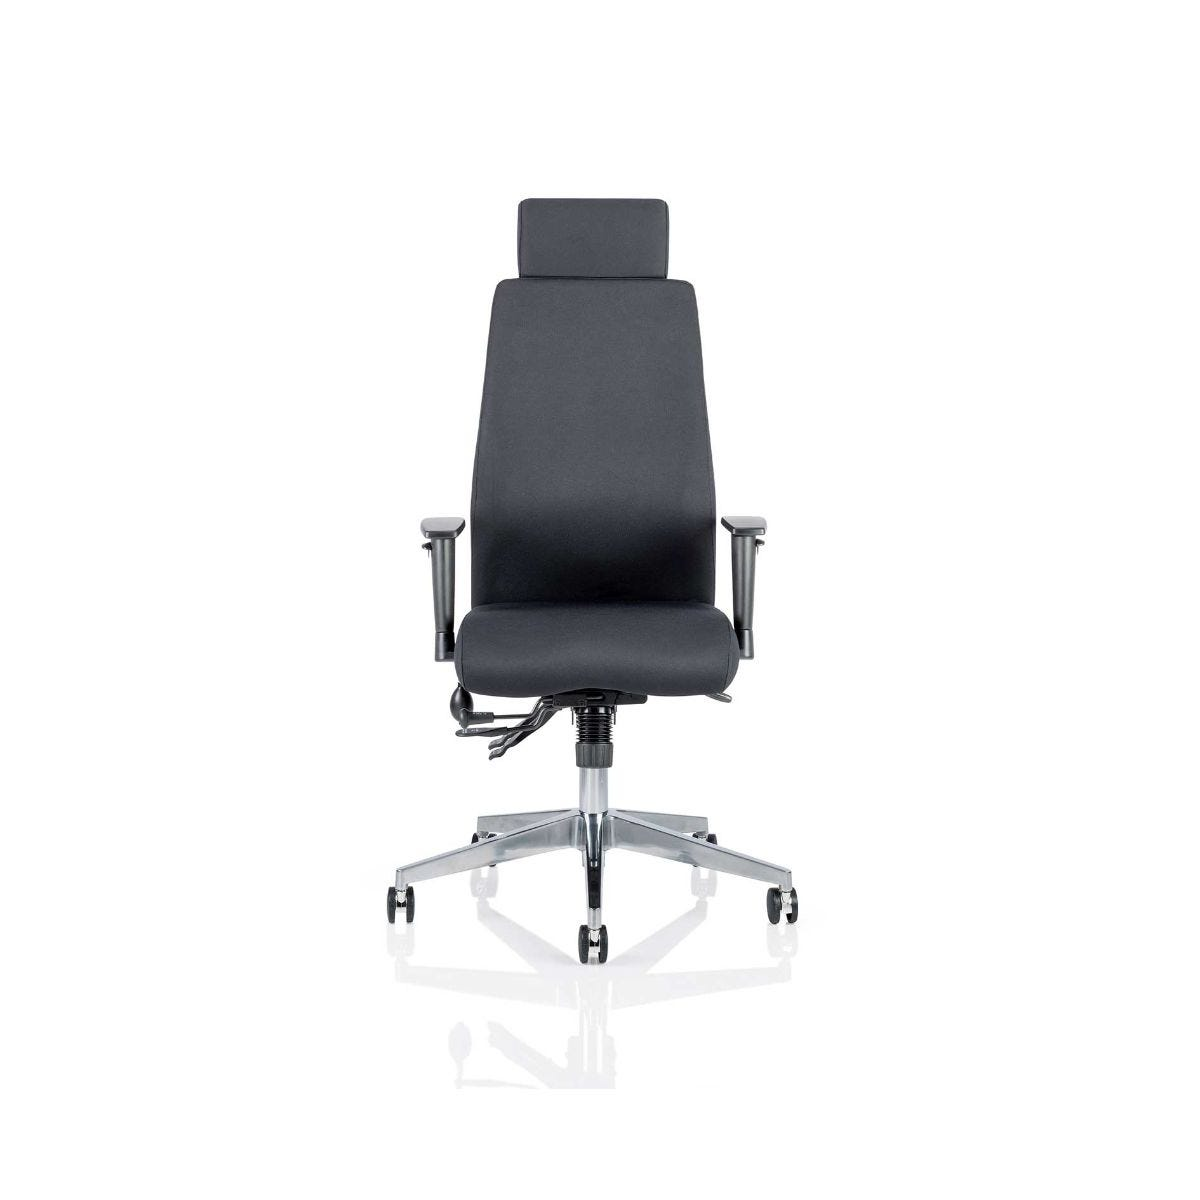 Onyx Posture Office Chair With Headrest, Black